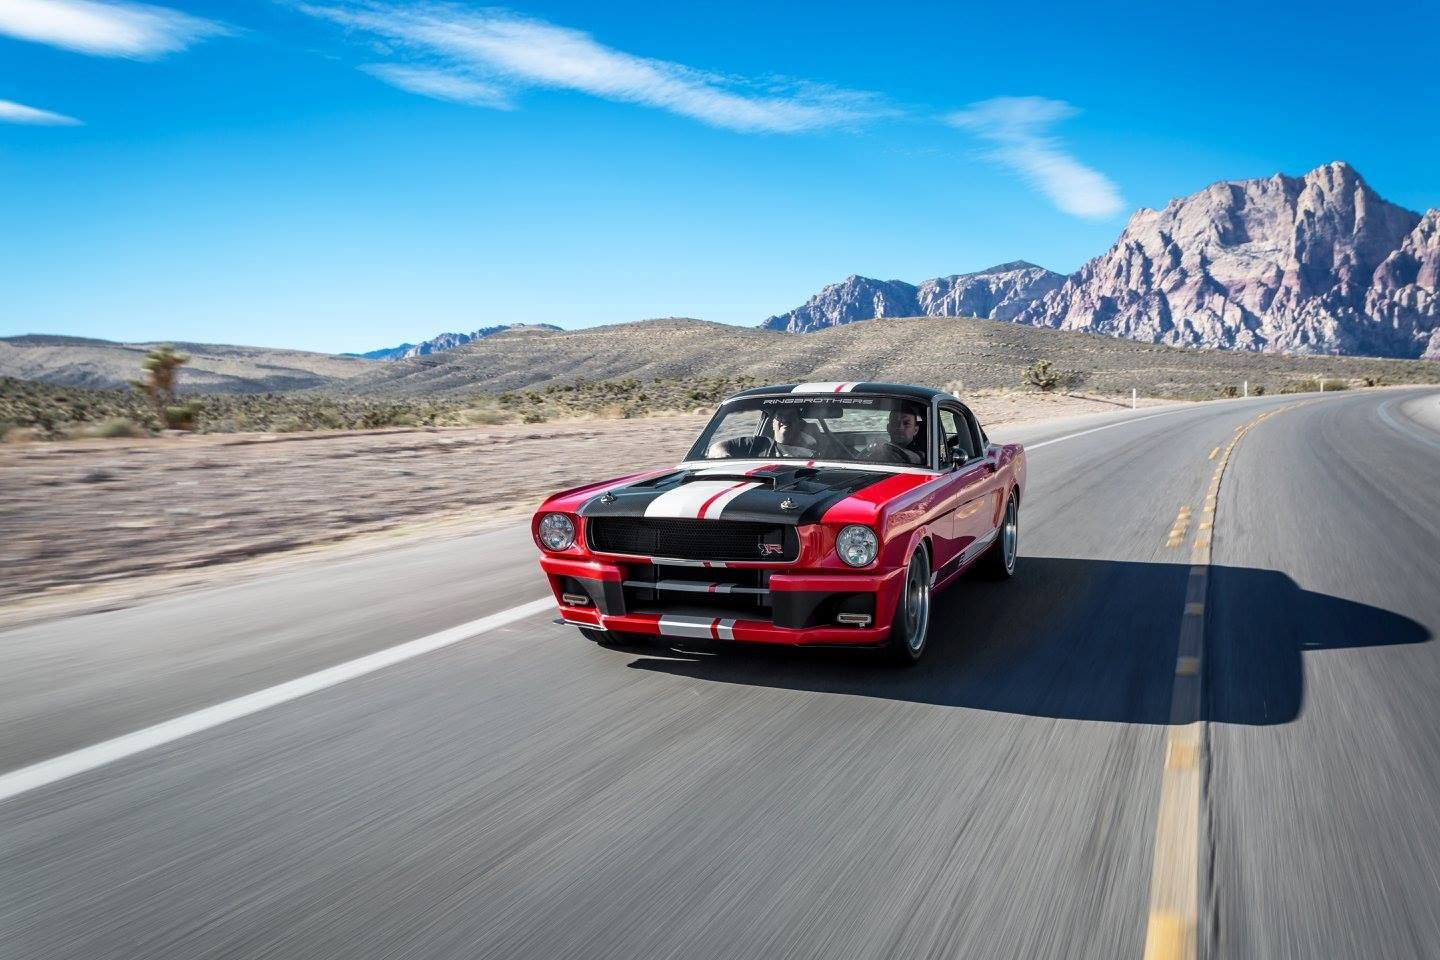 Ringbrothers Now Sell Carbon Fiber Hoods For Early Mustangs